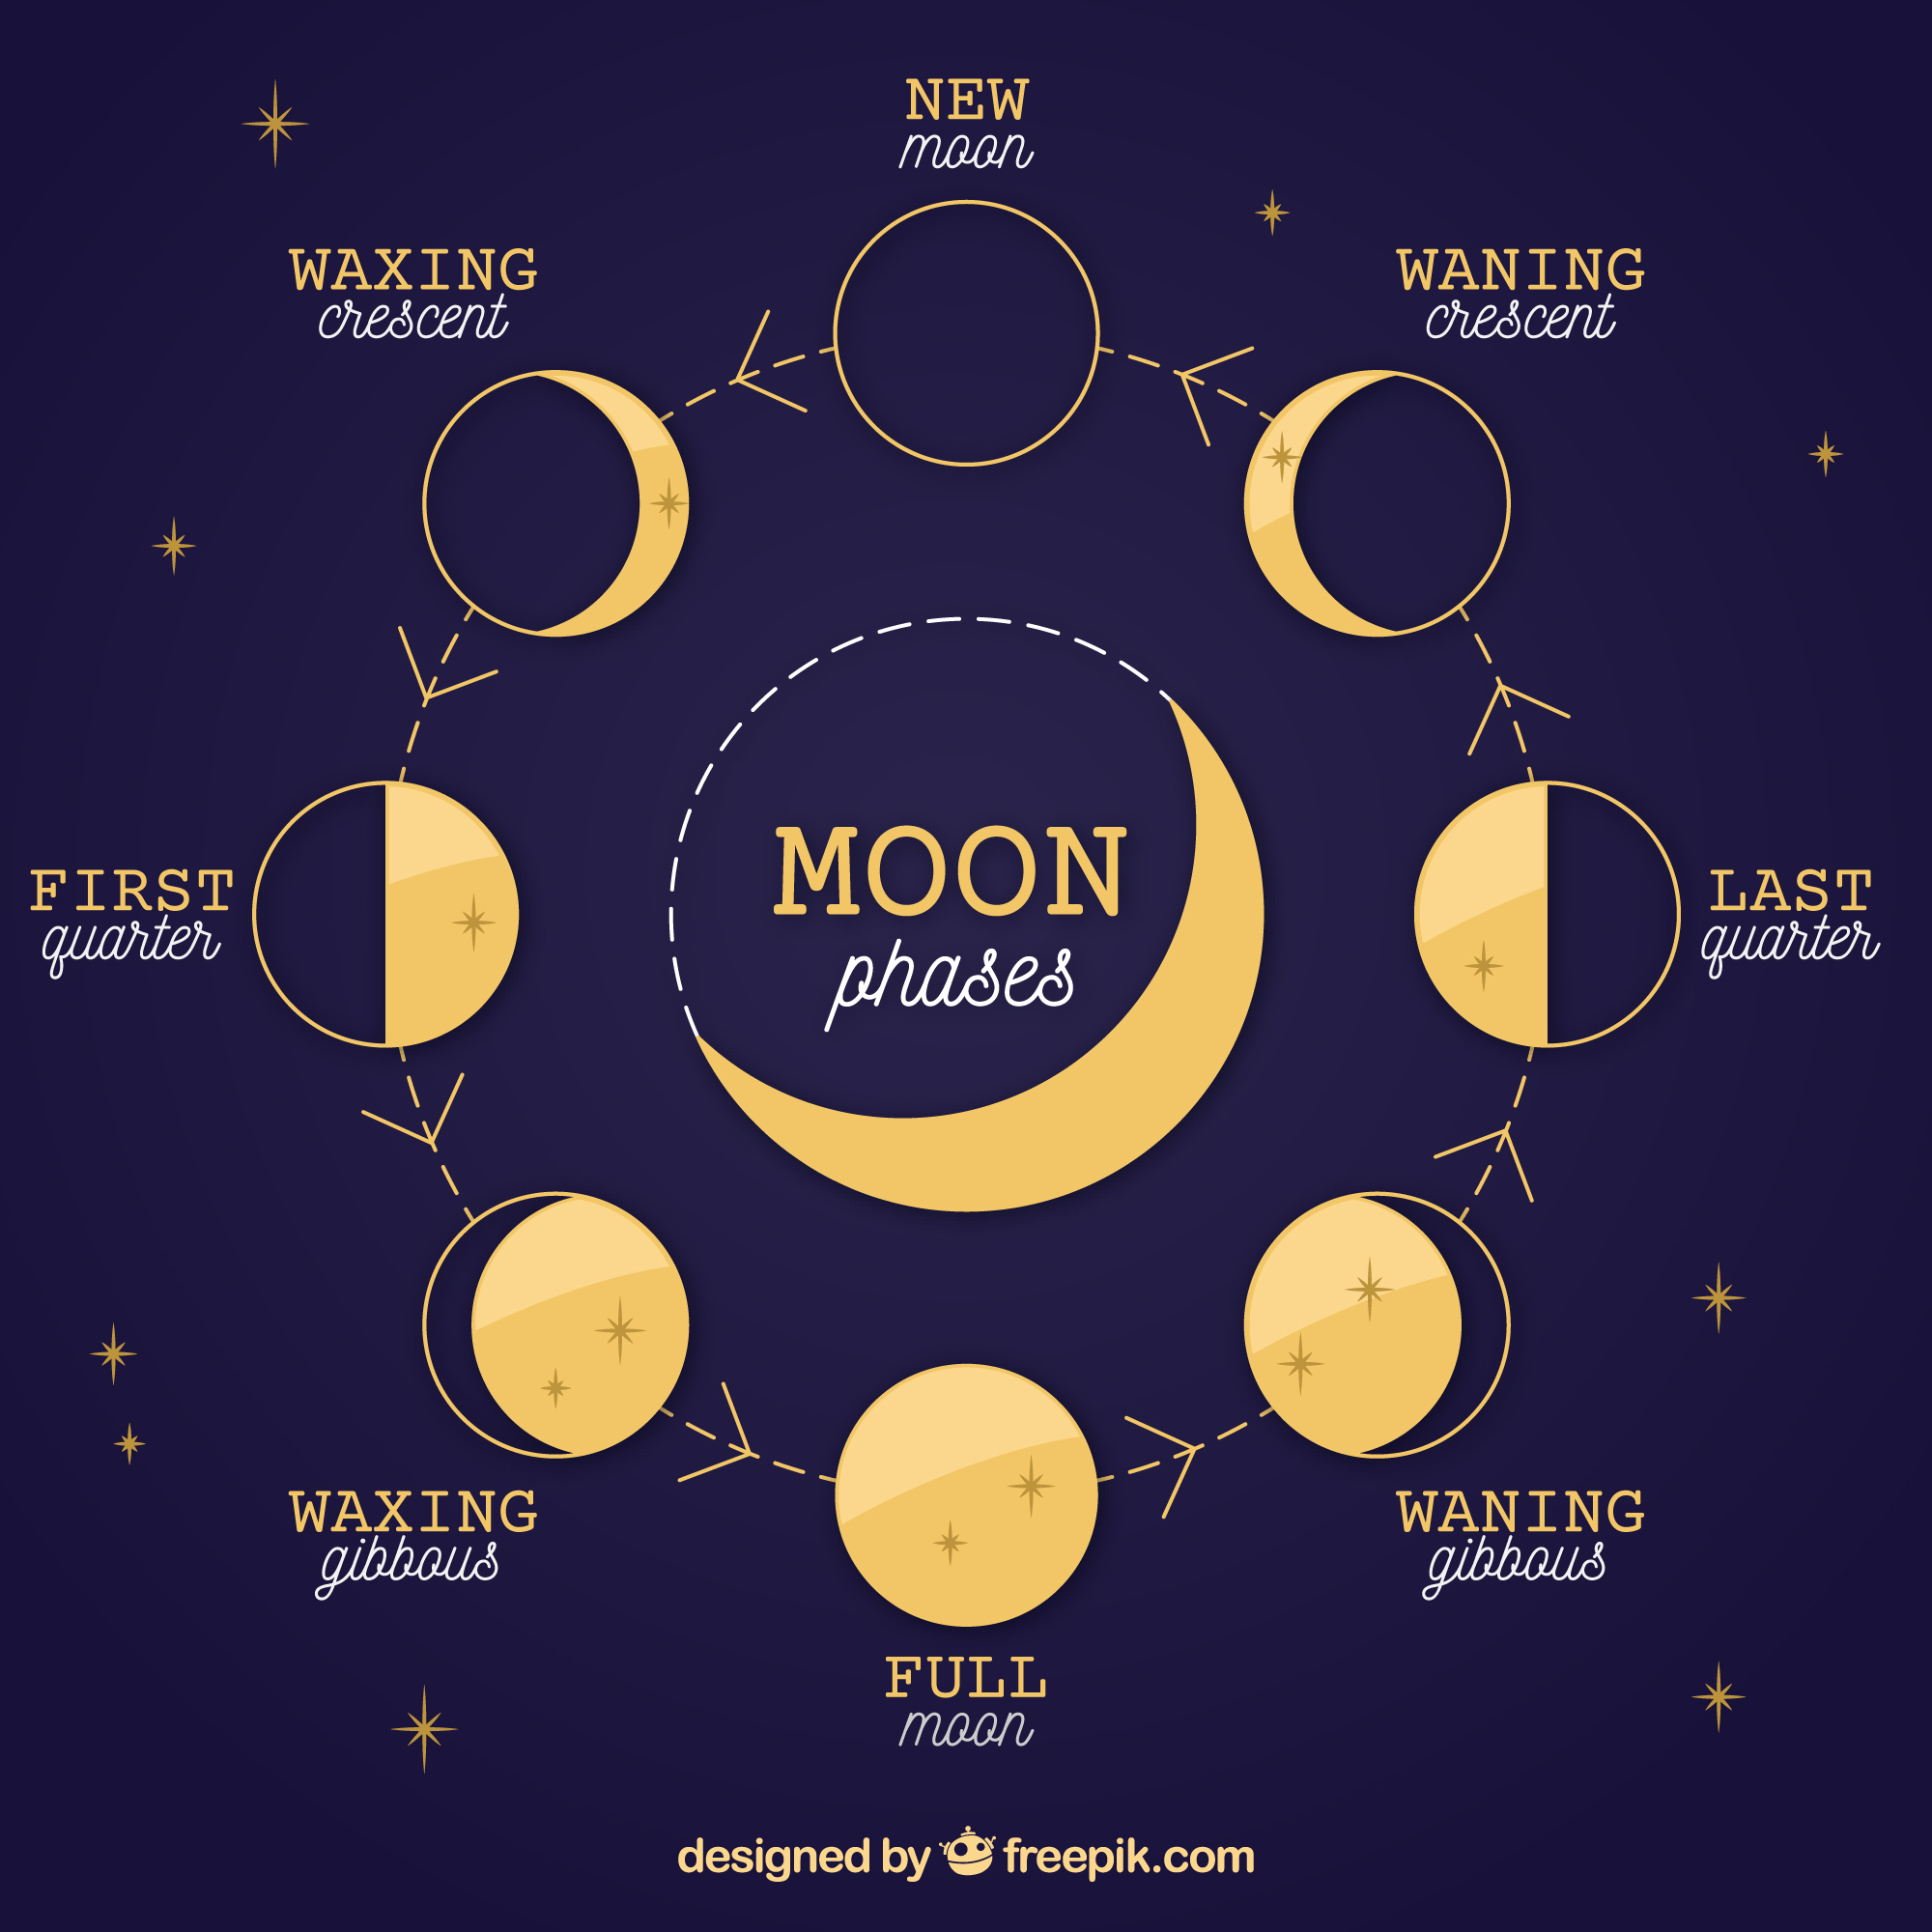 Moon phase diagram. Work with crystals for the full moon